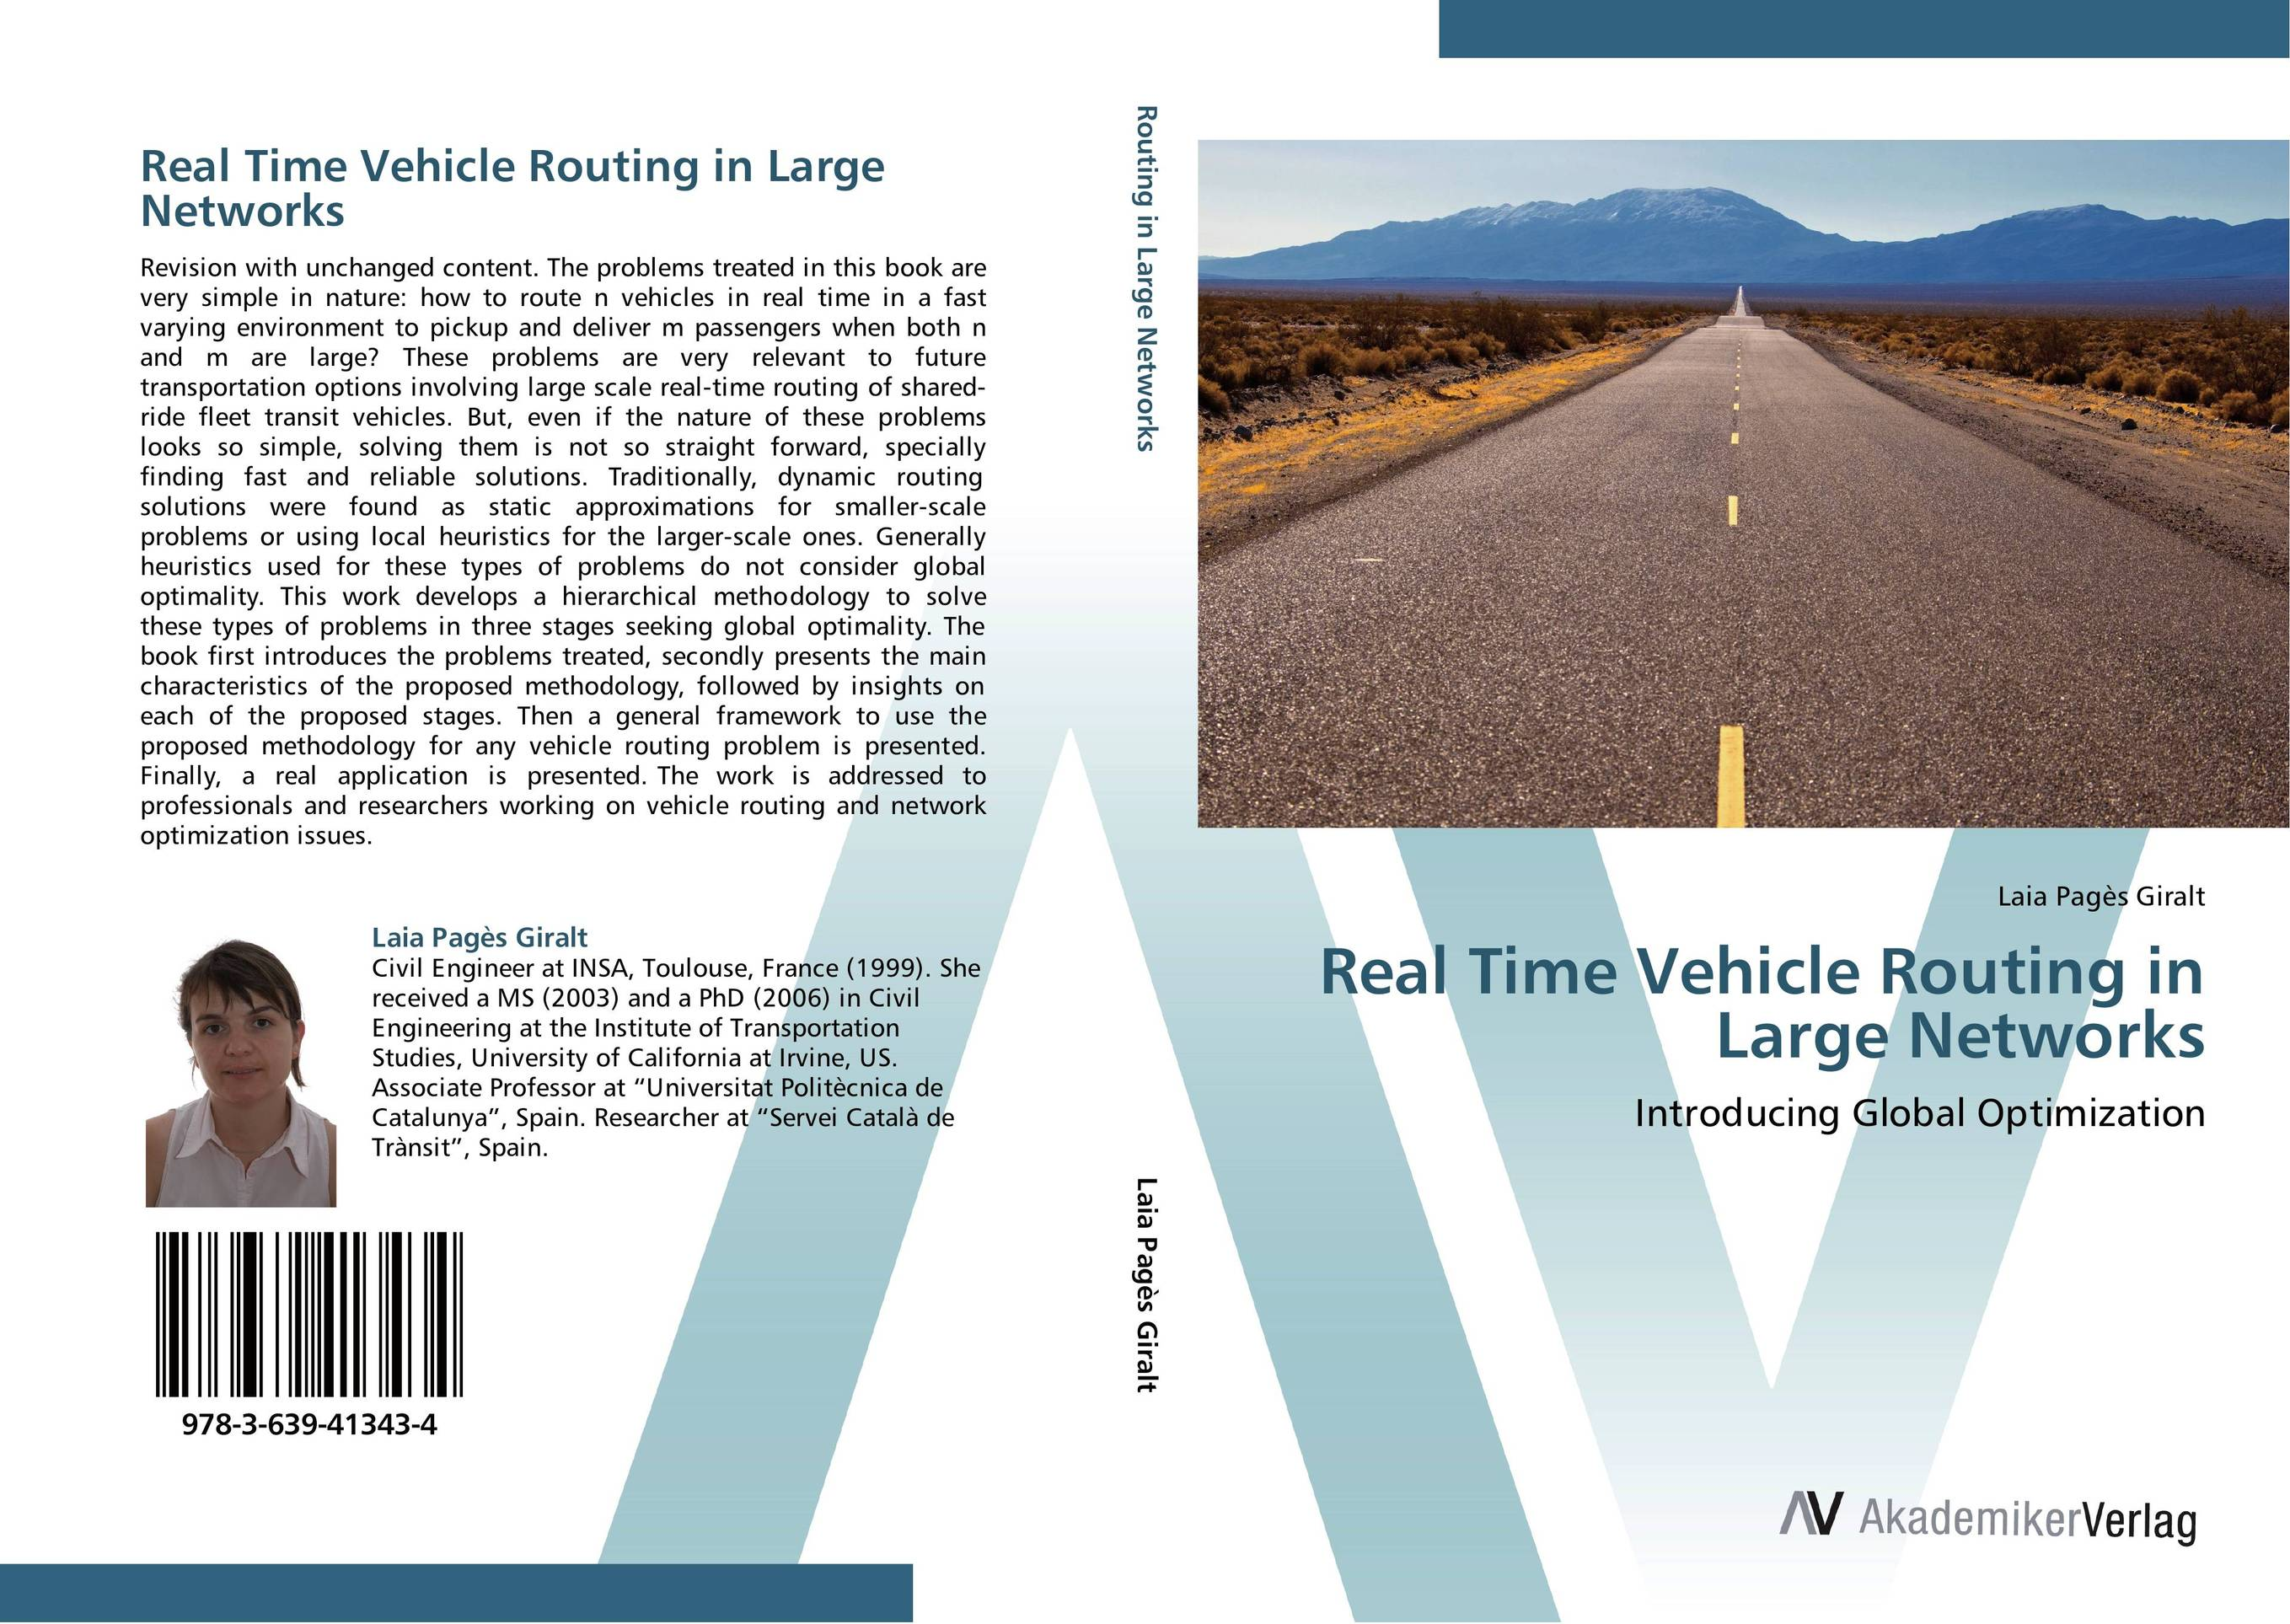 Real Time Vehicle Routing in Large Networks models for a class of sustainable supply chain routing problems